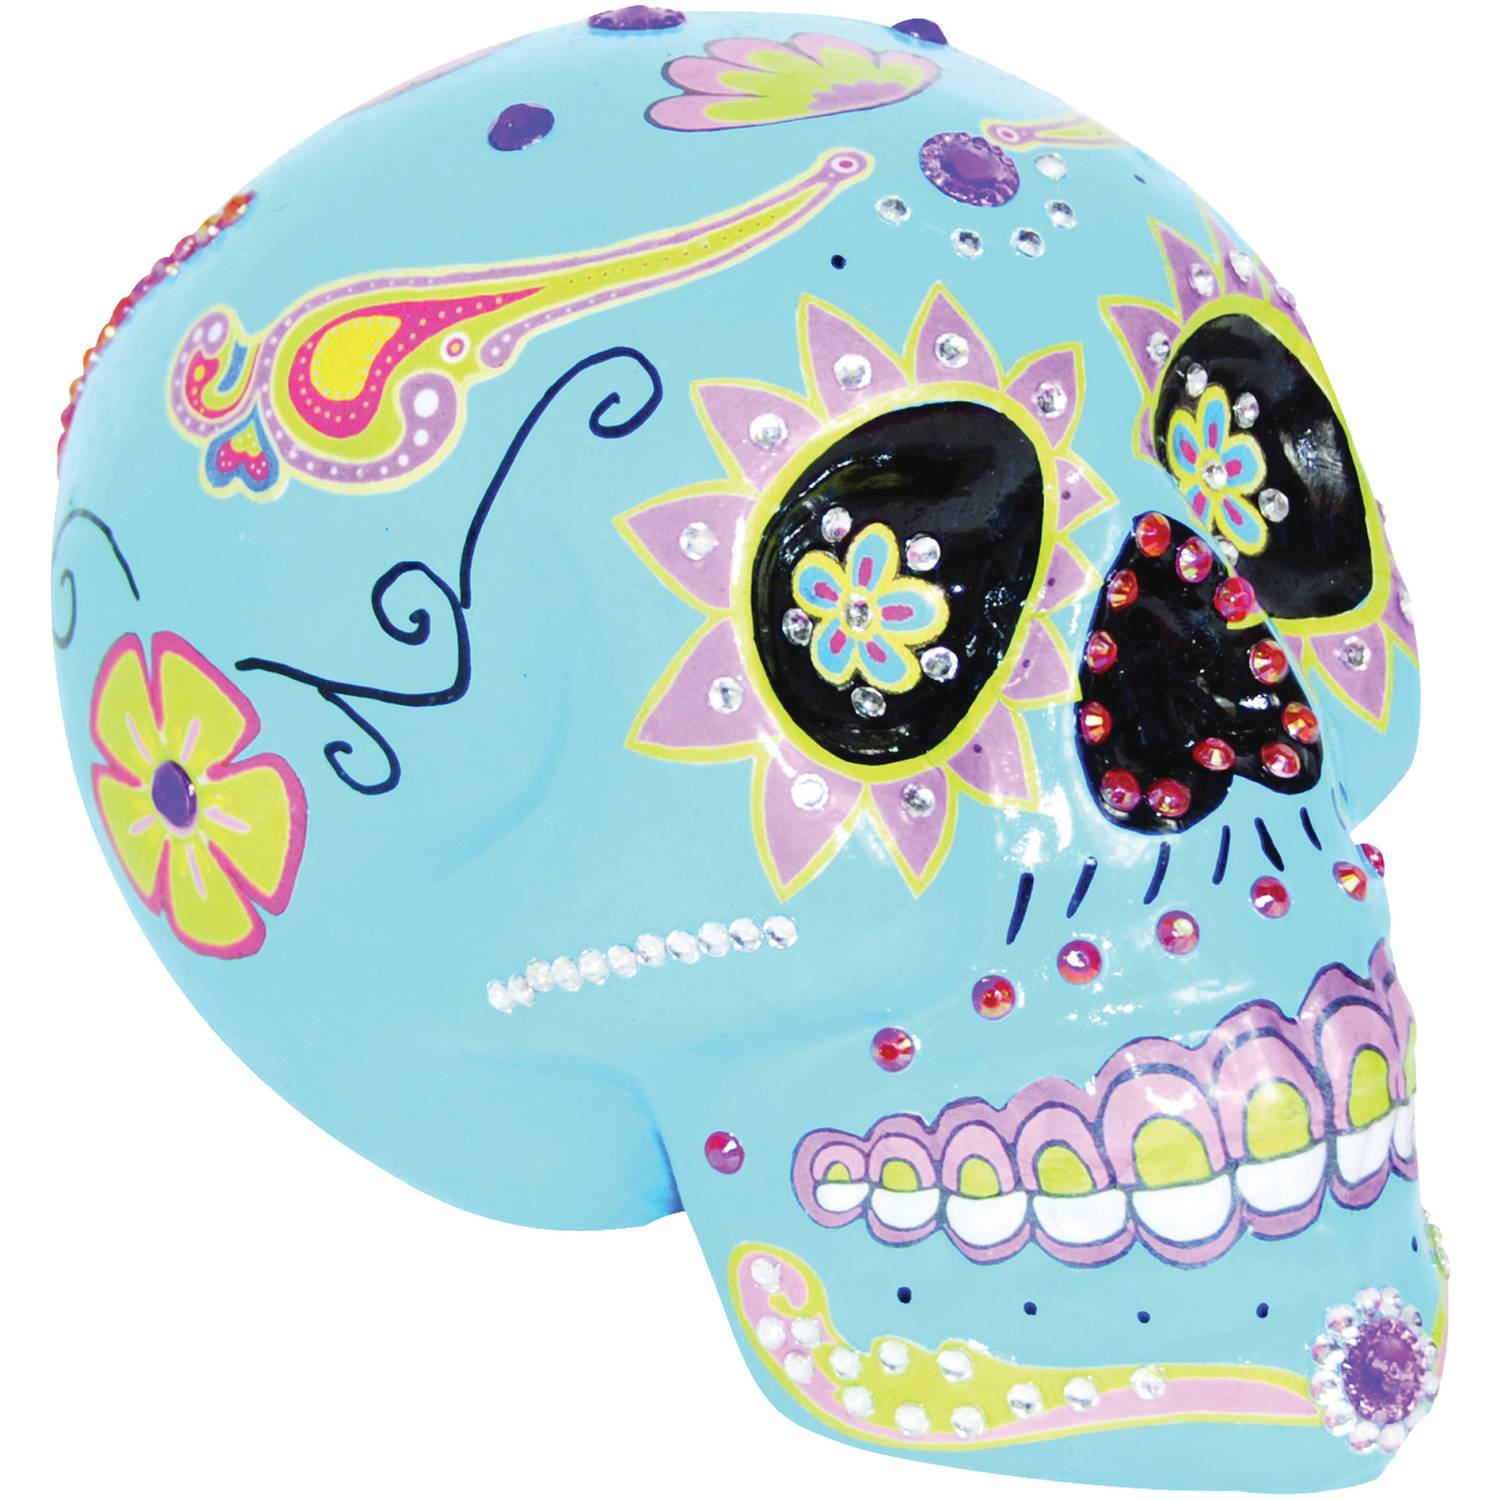 Sugar Skull Halloween Decoration